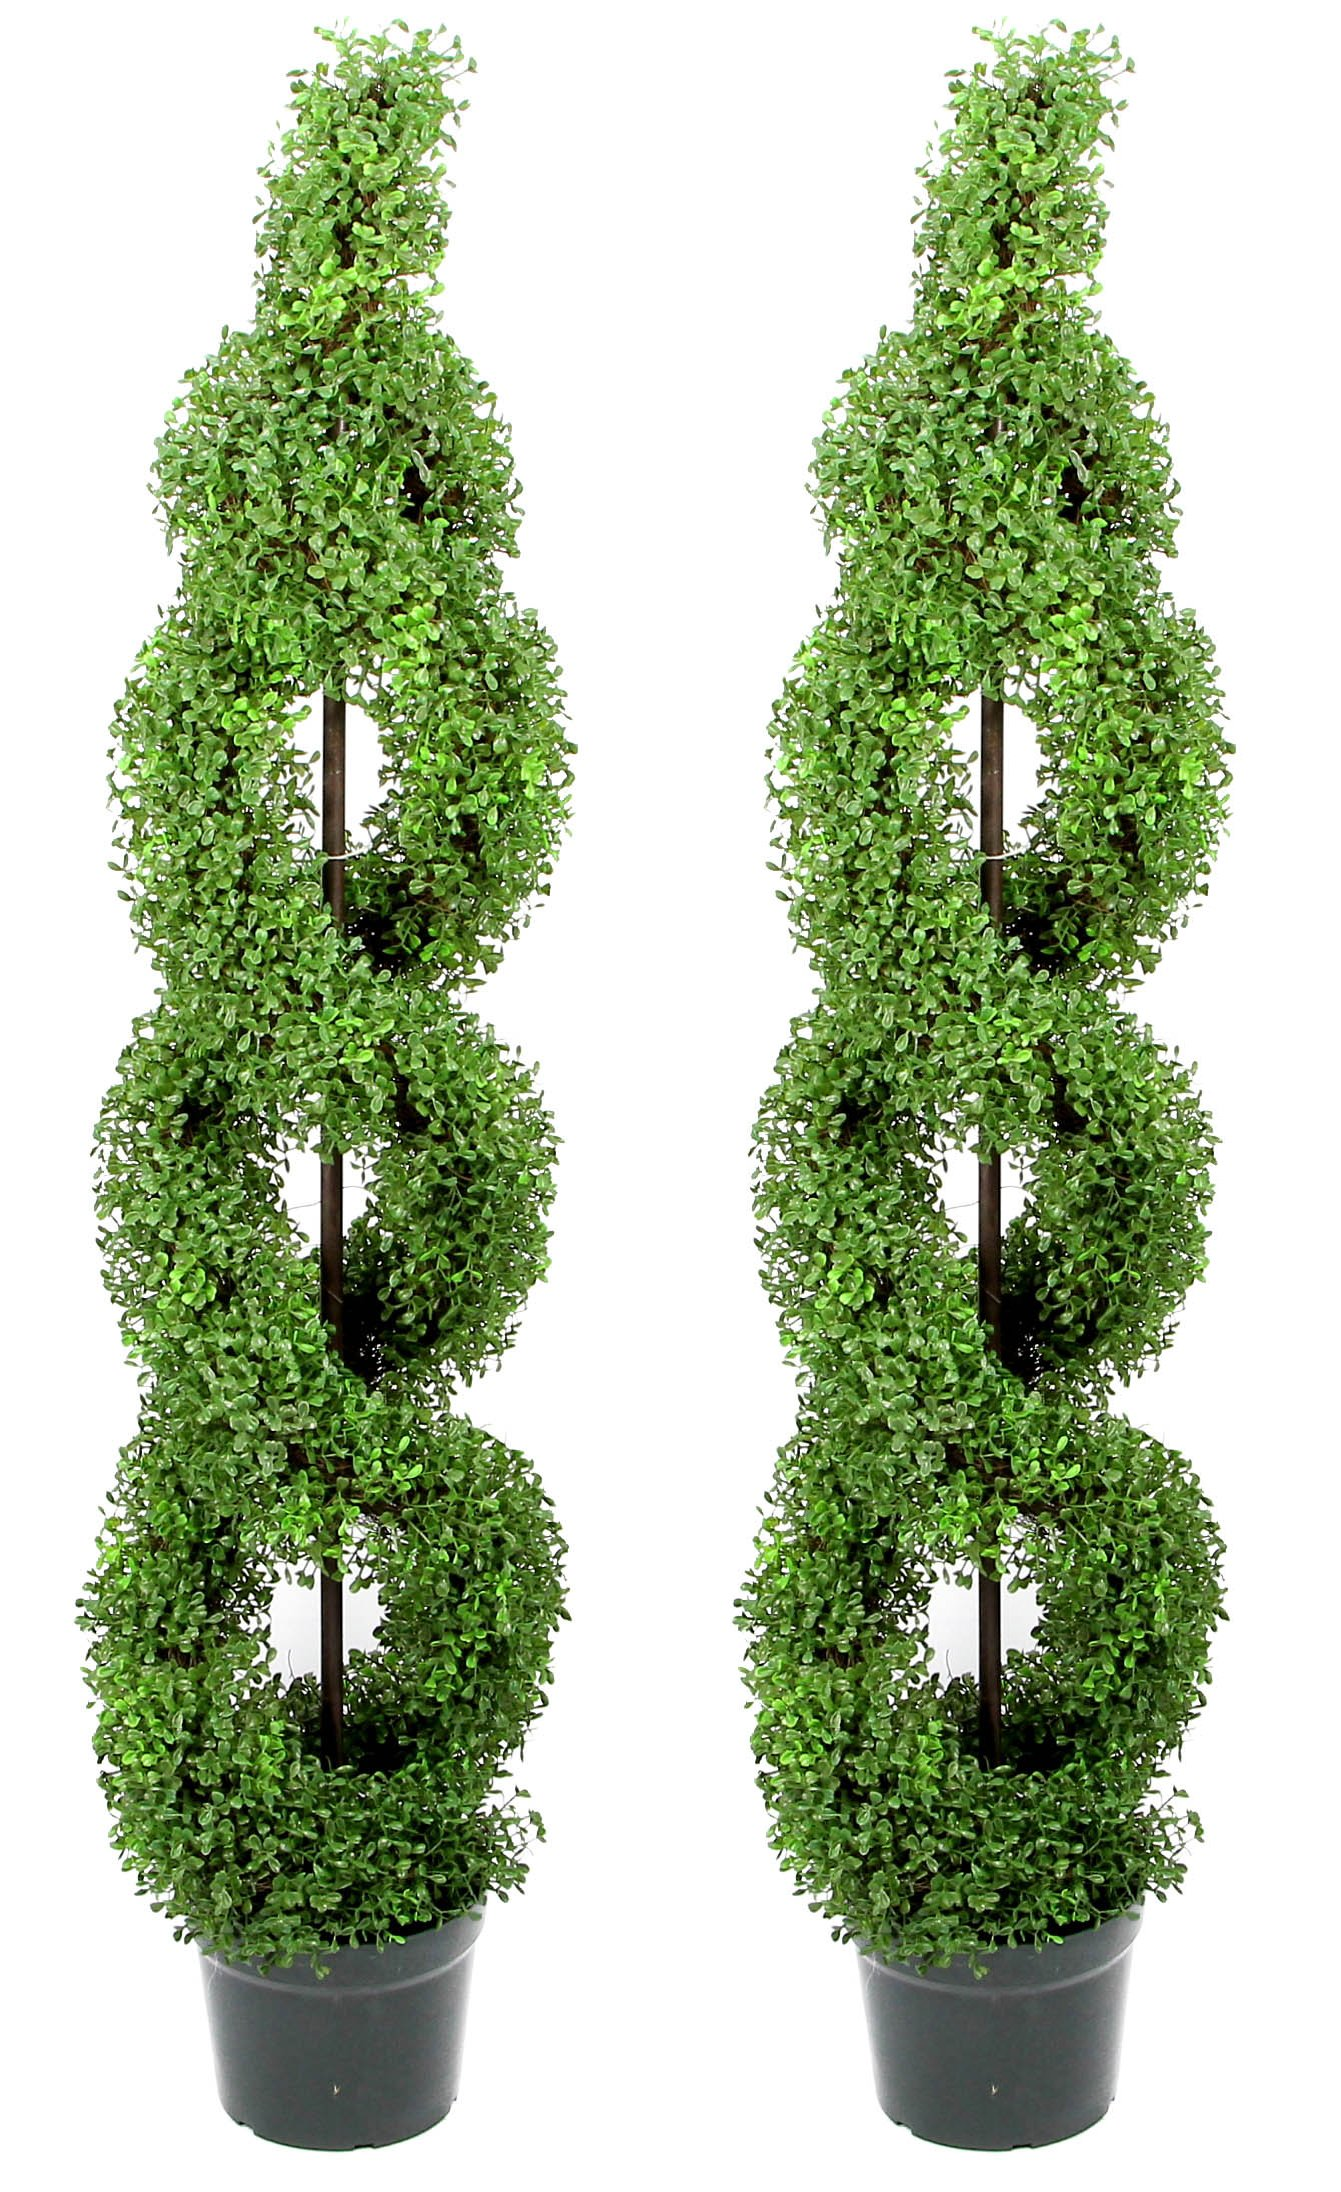 Admired By Nature 2' x 5' Artificial Boxwood Leave Double Spiral Topiary Plant Tree in Plastic Pot, Green by Admired By Nature